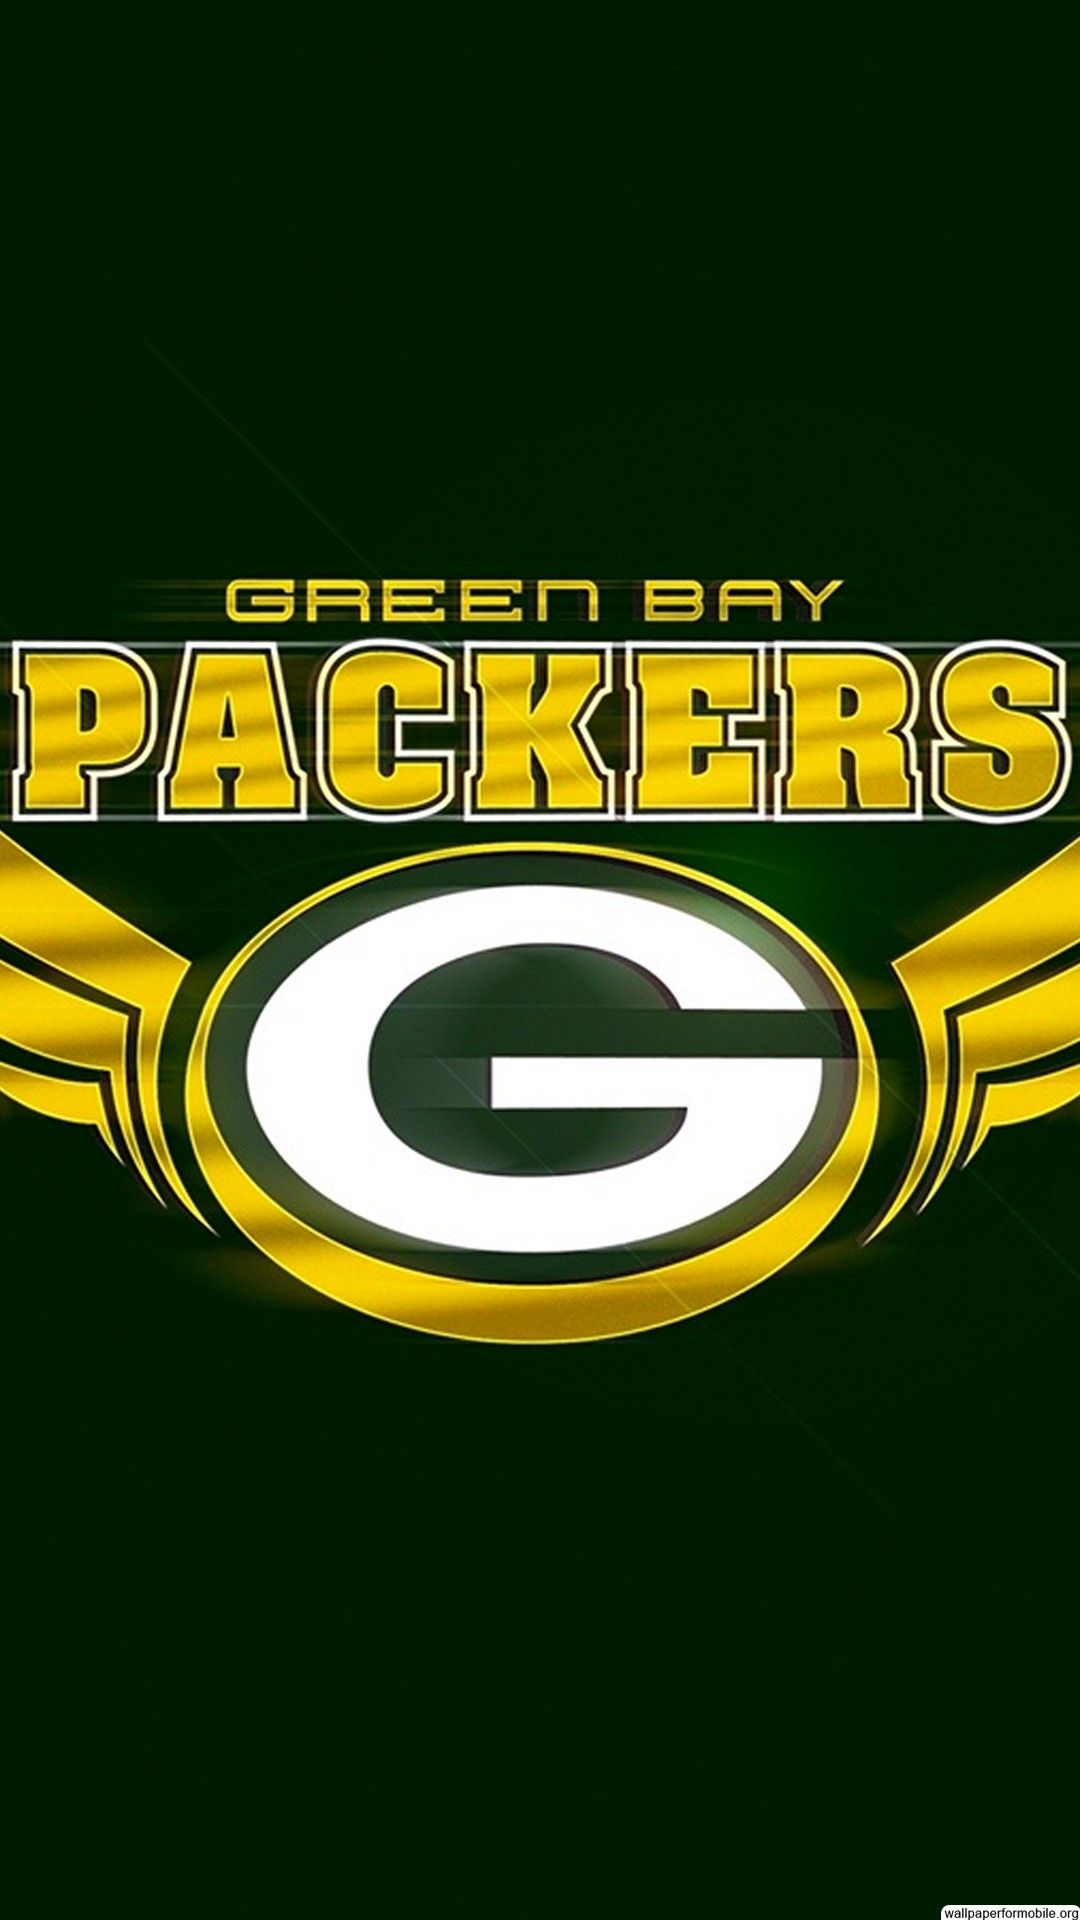 Green Bay Packers Wallpapers Top Free Green Bay Packers